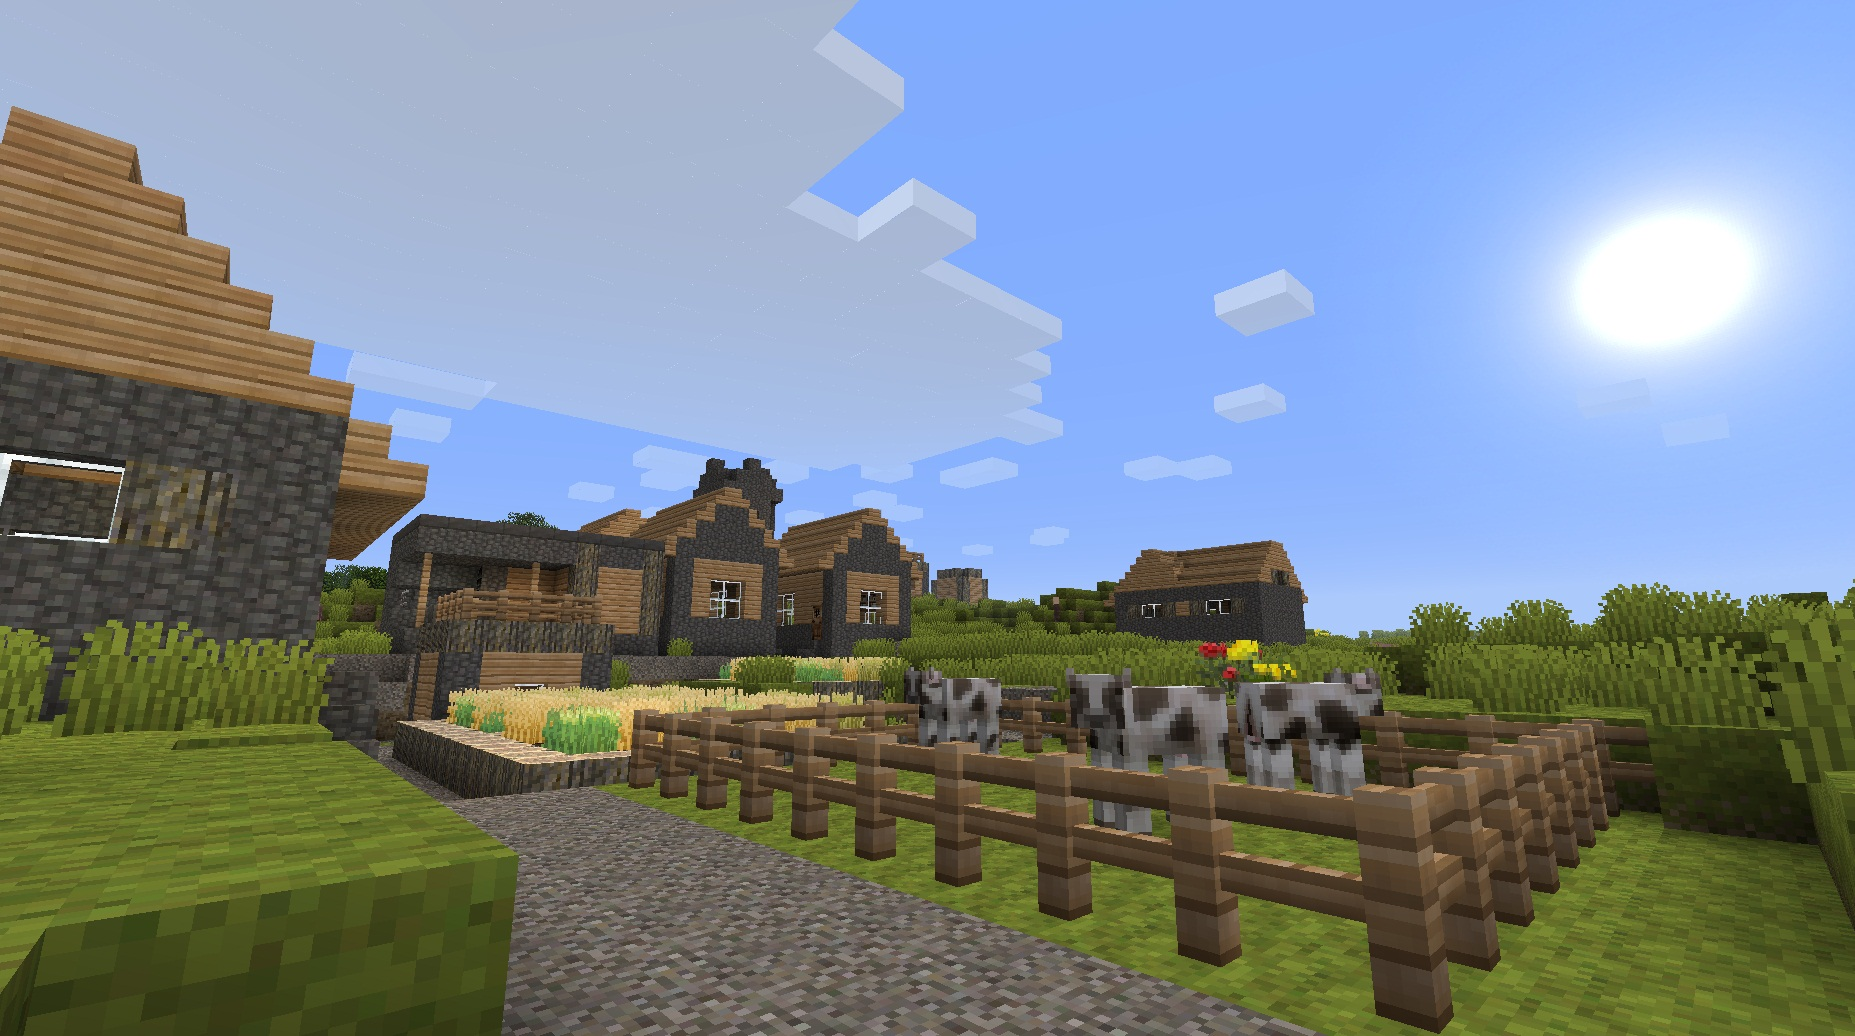 e44b4  Pixel Reality Texture Pack 1 [1.10] [32x] Pixel Reality Texture Pack Download